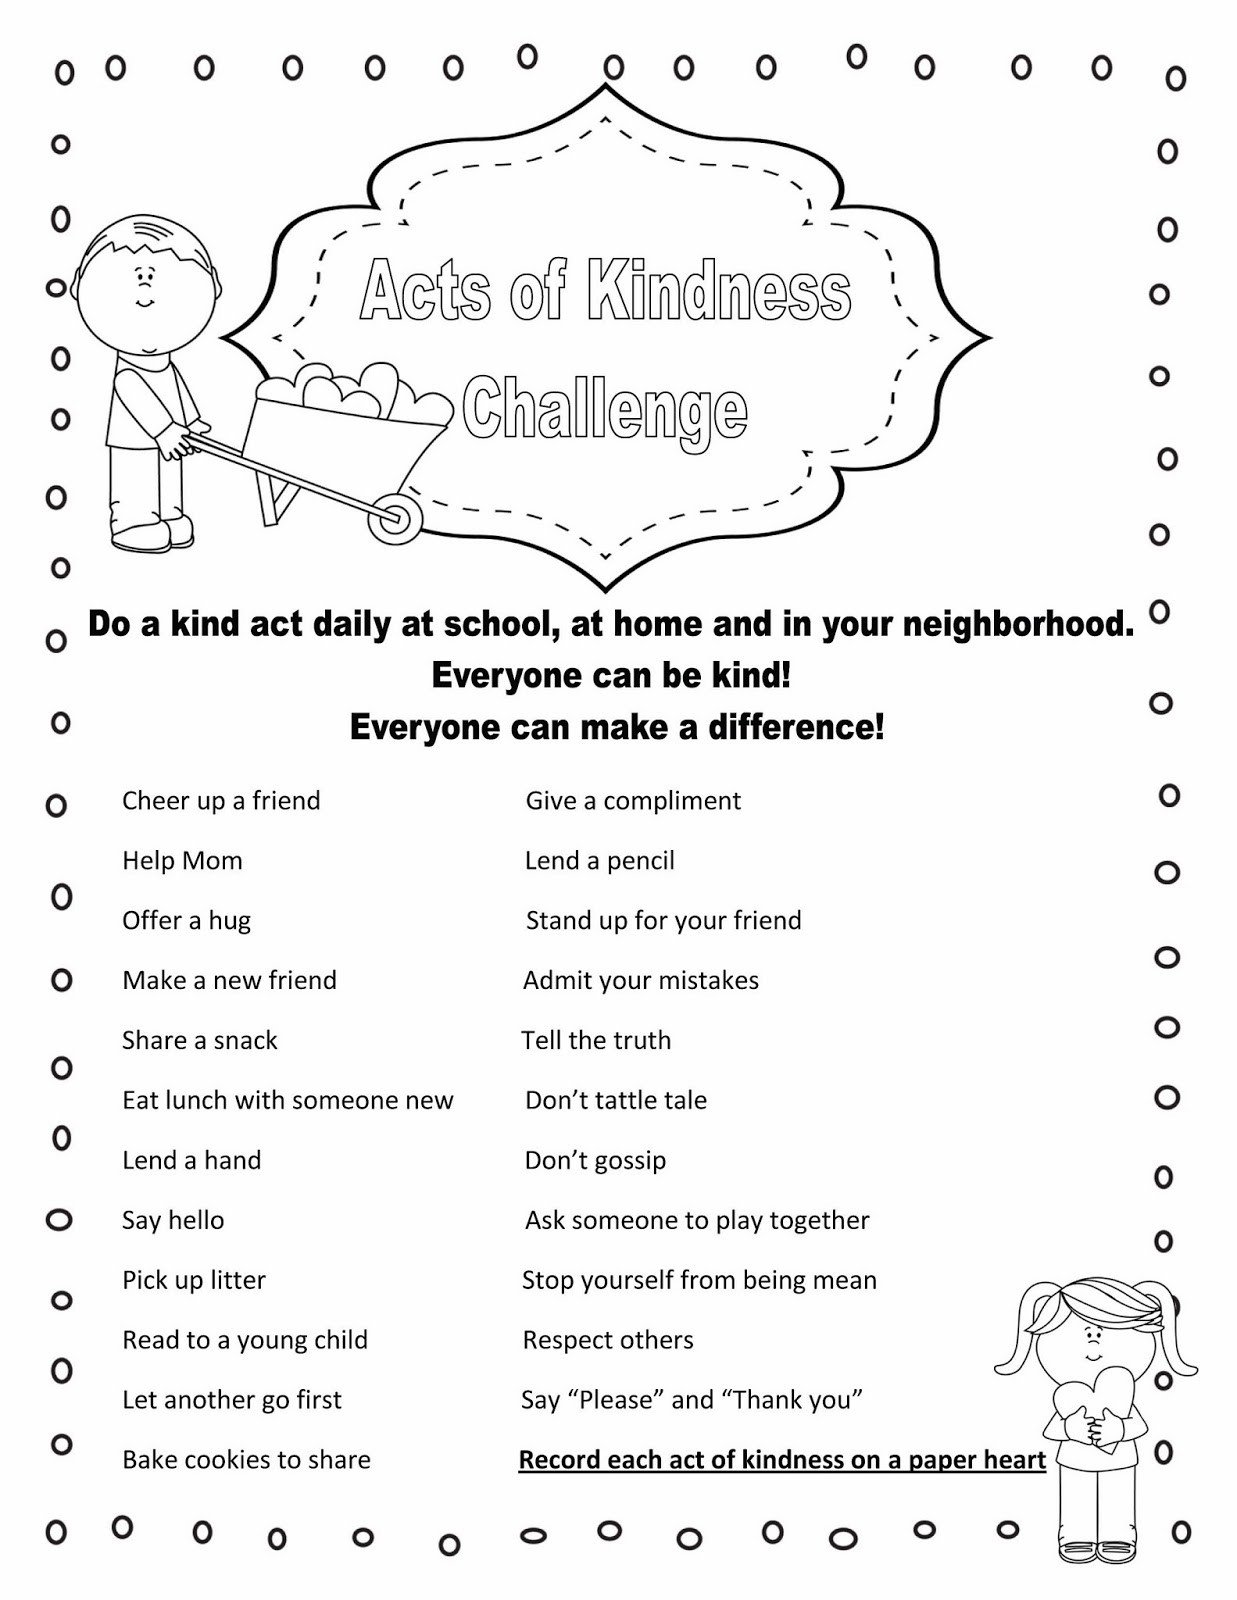 Acts of Kindness handout